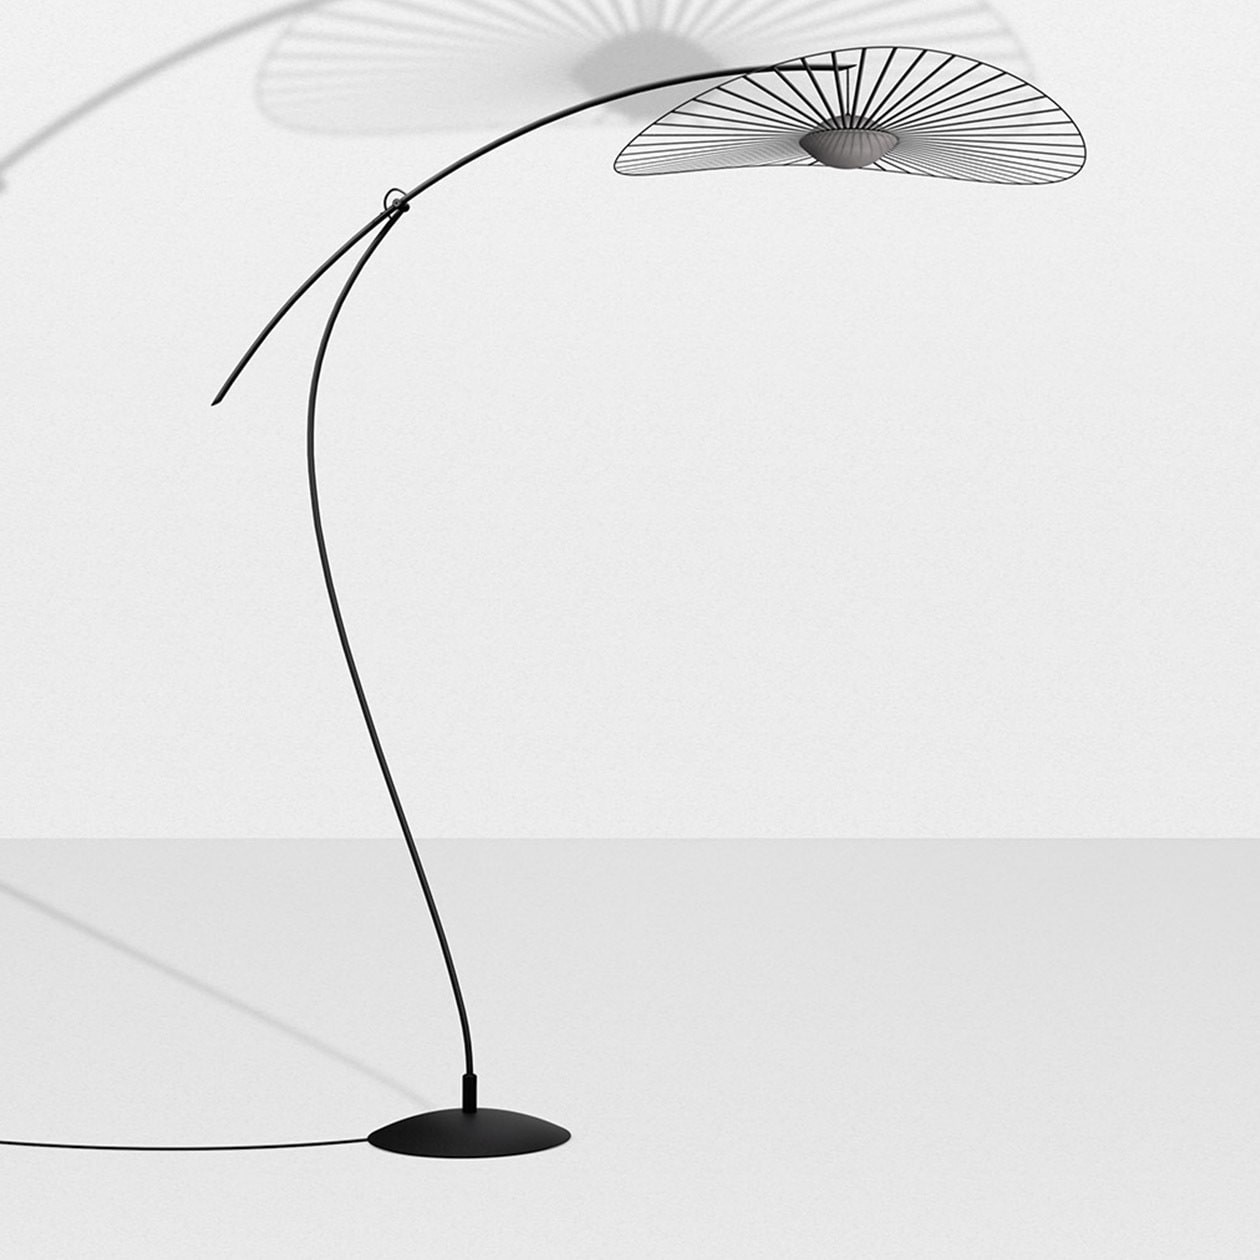 Vertigo Nova Floor Light - Petite Friture and Constance Guisset, an inseparable duo with lofty ambitions, have started a new chapter of the Vertigo story with Vertigo Nova: a highly technical piece of sophisticated design.  The collection includes items, from table and floor lamps to suspension and wall lights, all available in either black or white. The vast veil of graphic lines mounted atop a sphere of handblown glass uses built-in LED technology to emit a soft light.  Vertigo Nova quivers as the geometric curve of the fiberglass hoop. Installed by hand by qualified French artisans and held delicately but firmly in place by taught ribbons, reacts to the lightest of breezes.  Vertigo Nova is the epitome of striking a balance between technology and elegance. | Matter of Stuff